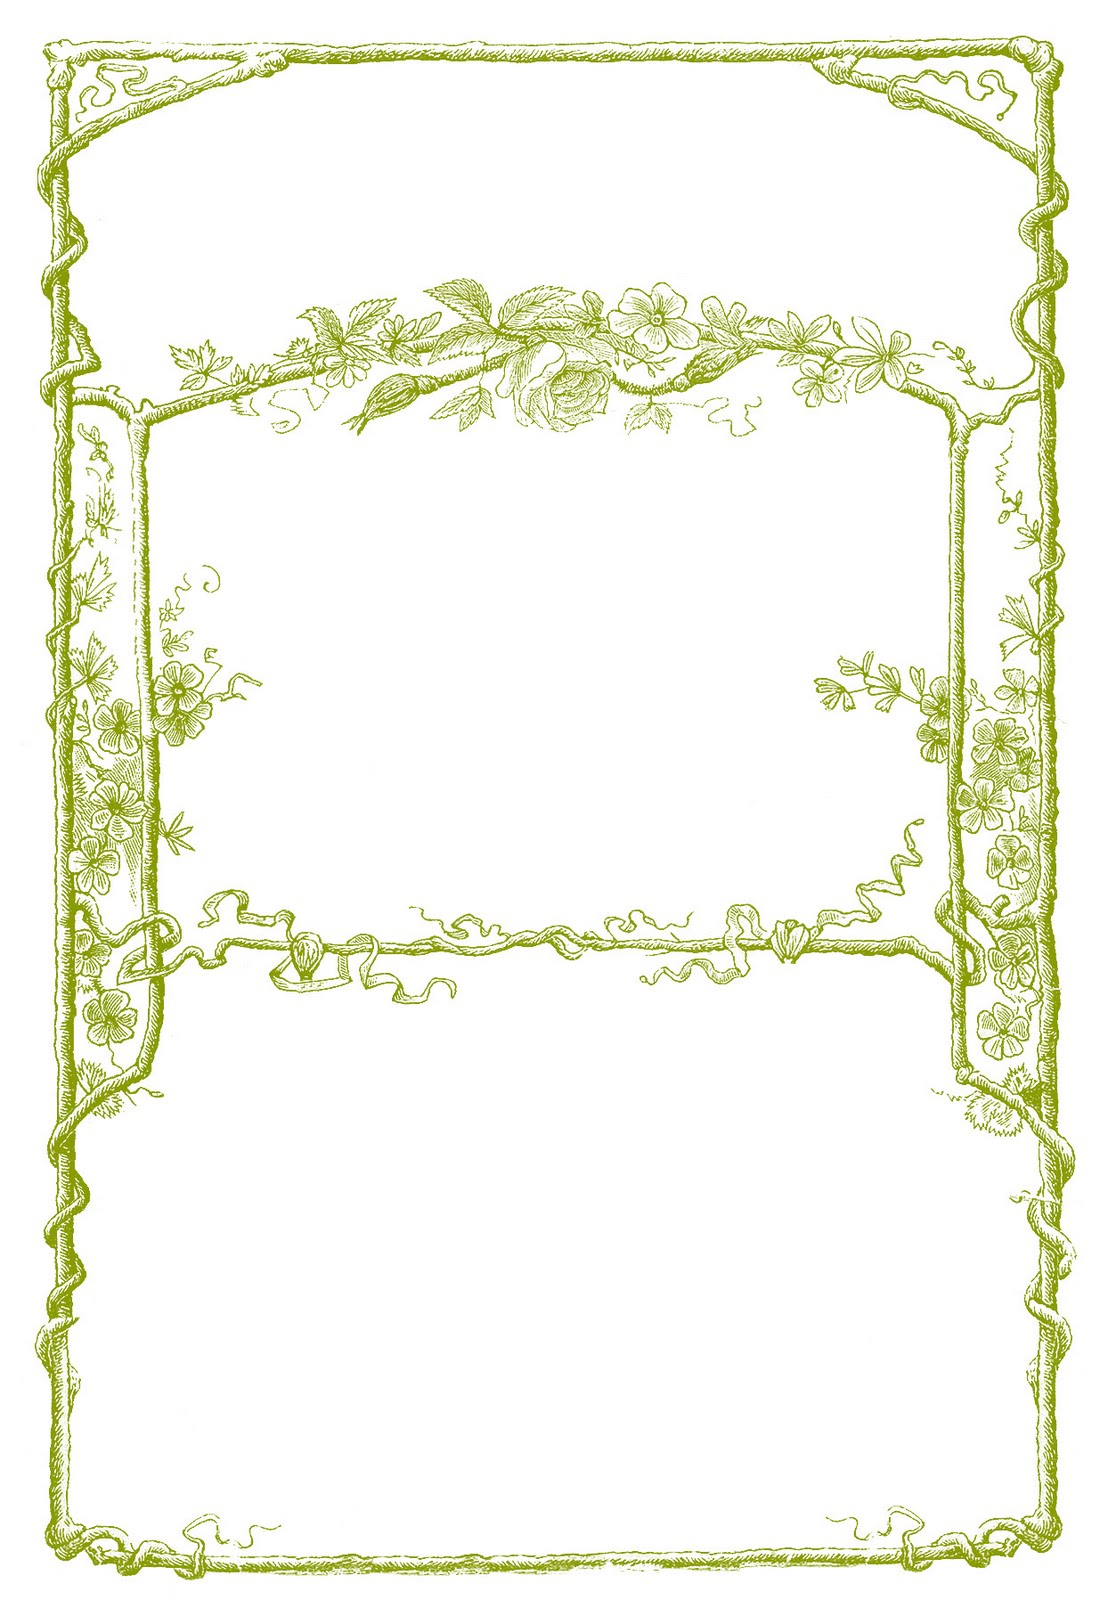 Cover clipart frame Art Bois Click Vintage enlarge